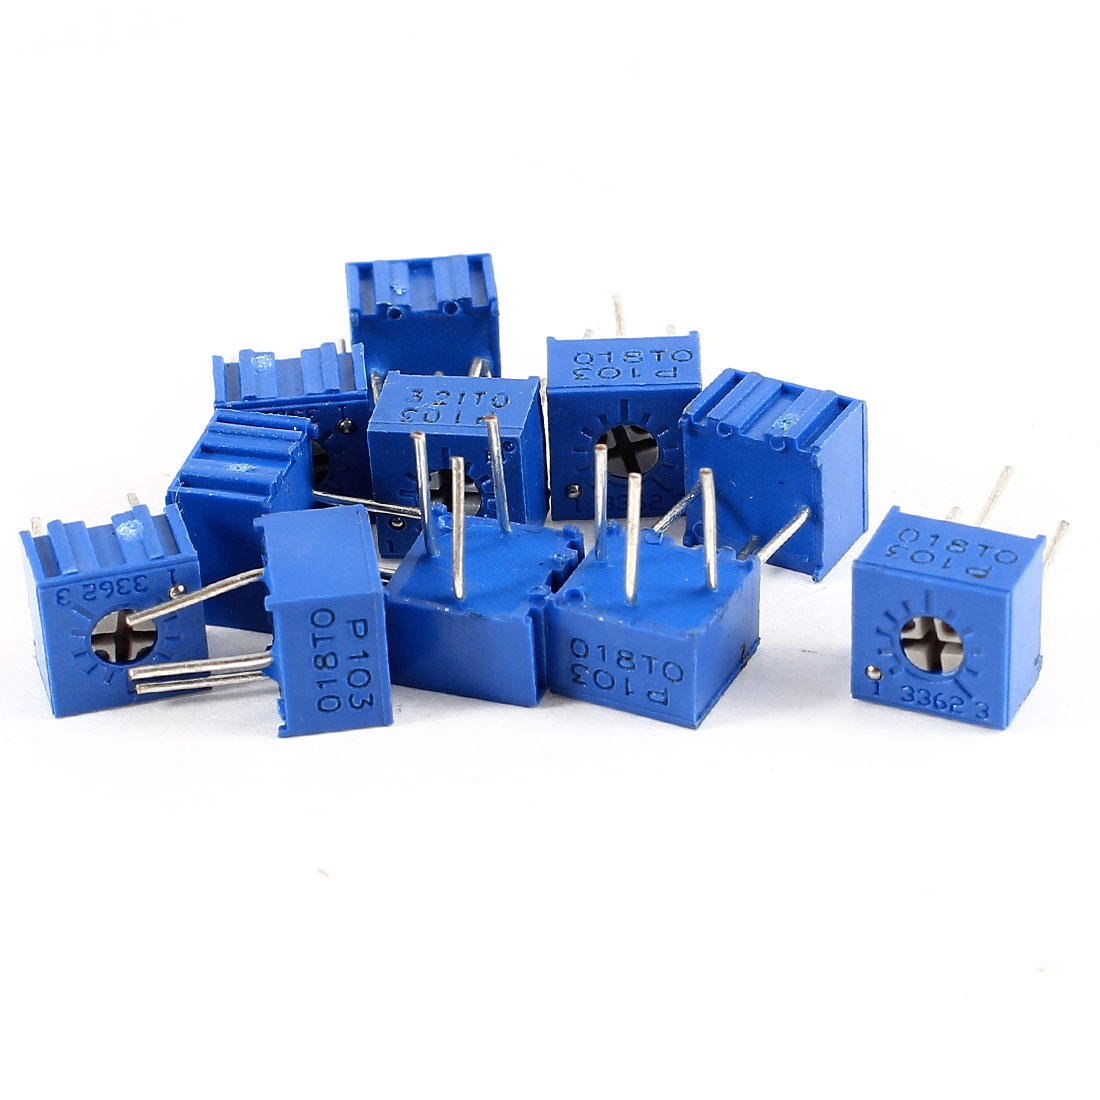 10Pcs 3362W-103 10K ohm 3 Pins High Precision Adjustable Resistor Trim Pot Potentiometer Trimmer